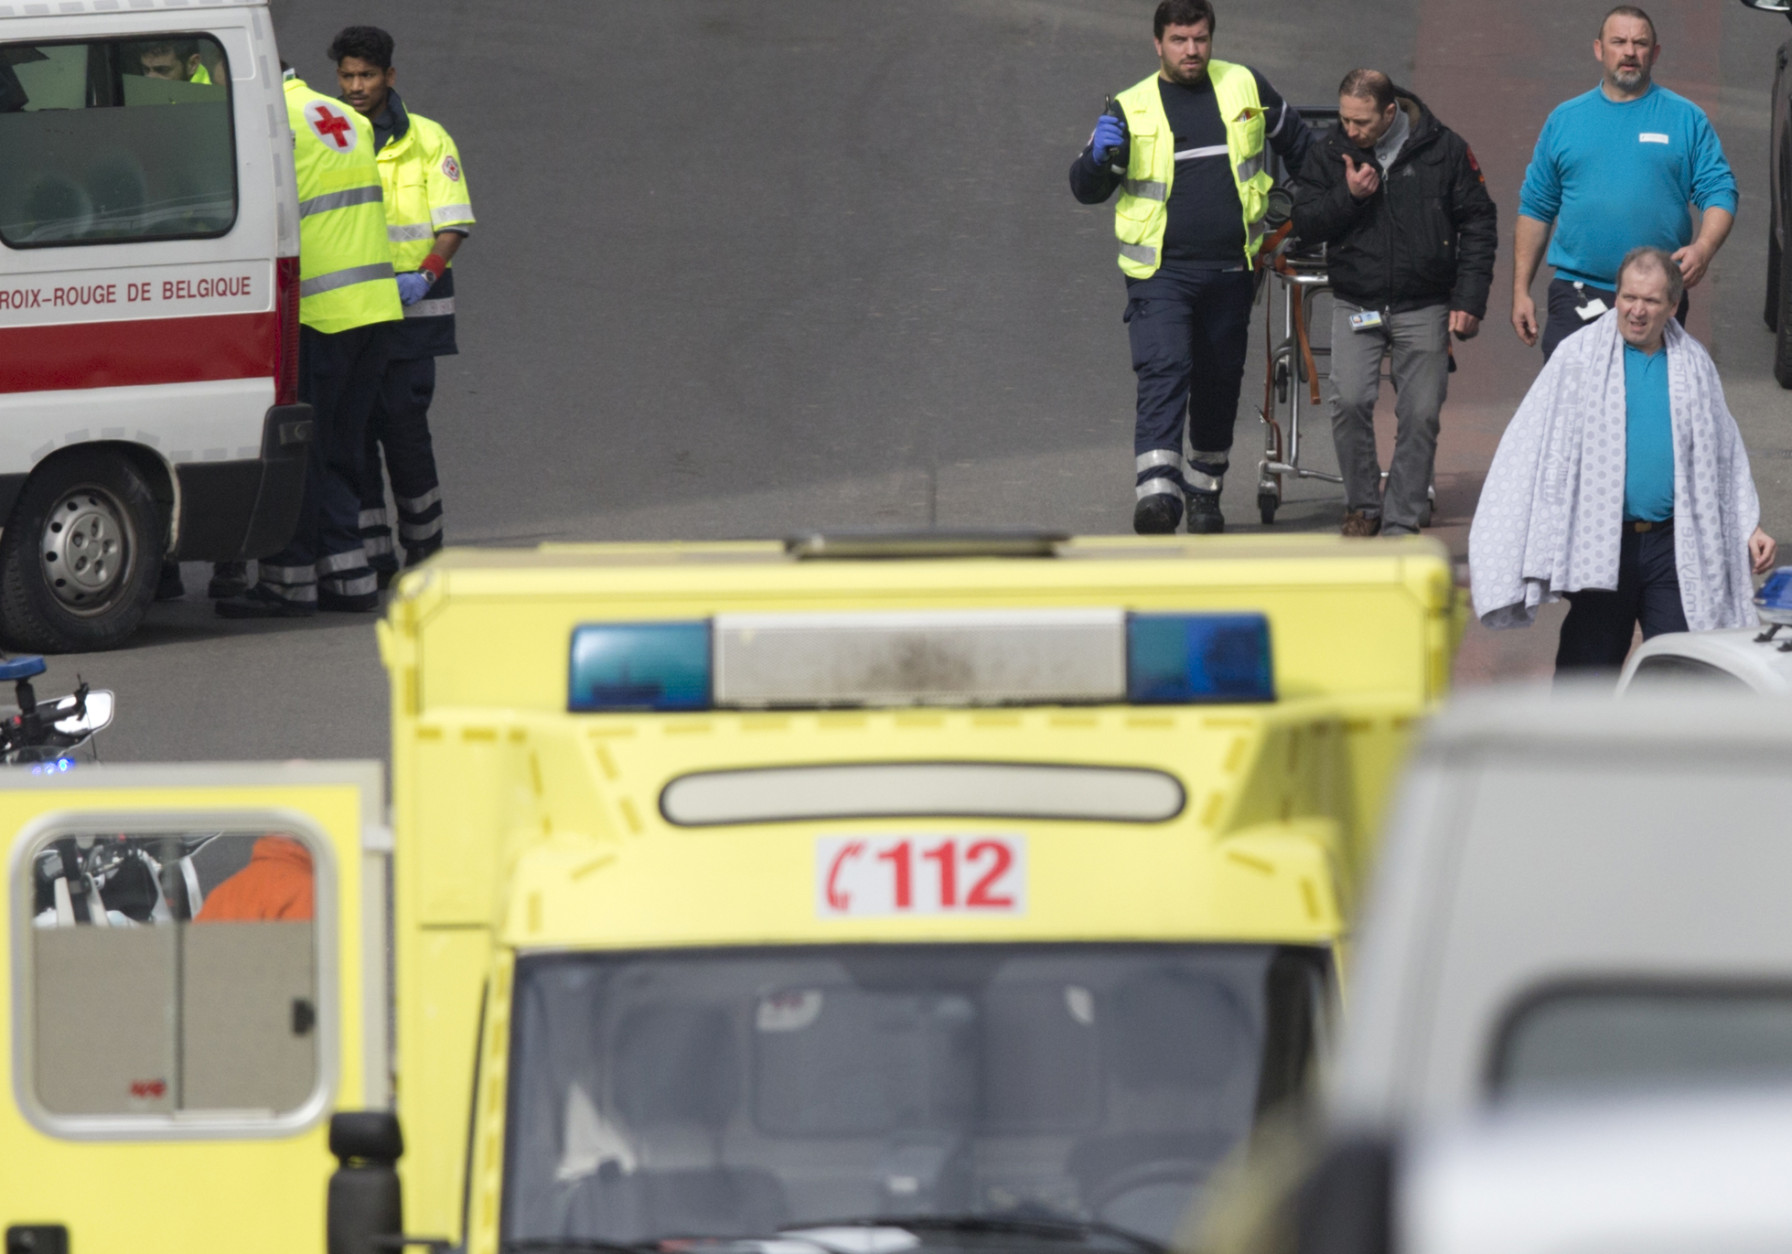 A victim wearing a blanket is evacuated by emergency services after a explosion in a main metro station in Brussels on Tuesday, March 22, 2016. Explosions rocked the Brussels airport and the subway system Tuesday, killing at least 13 people and injuring many others just days after the main suspect in the November Paris attacks was arrested in the city, police said. (AP Photo/Virginia Mayo)